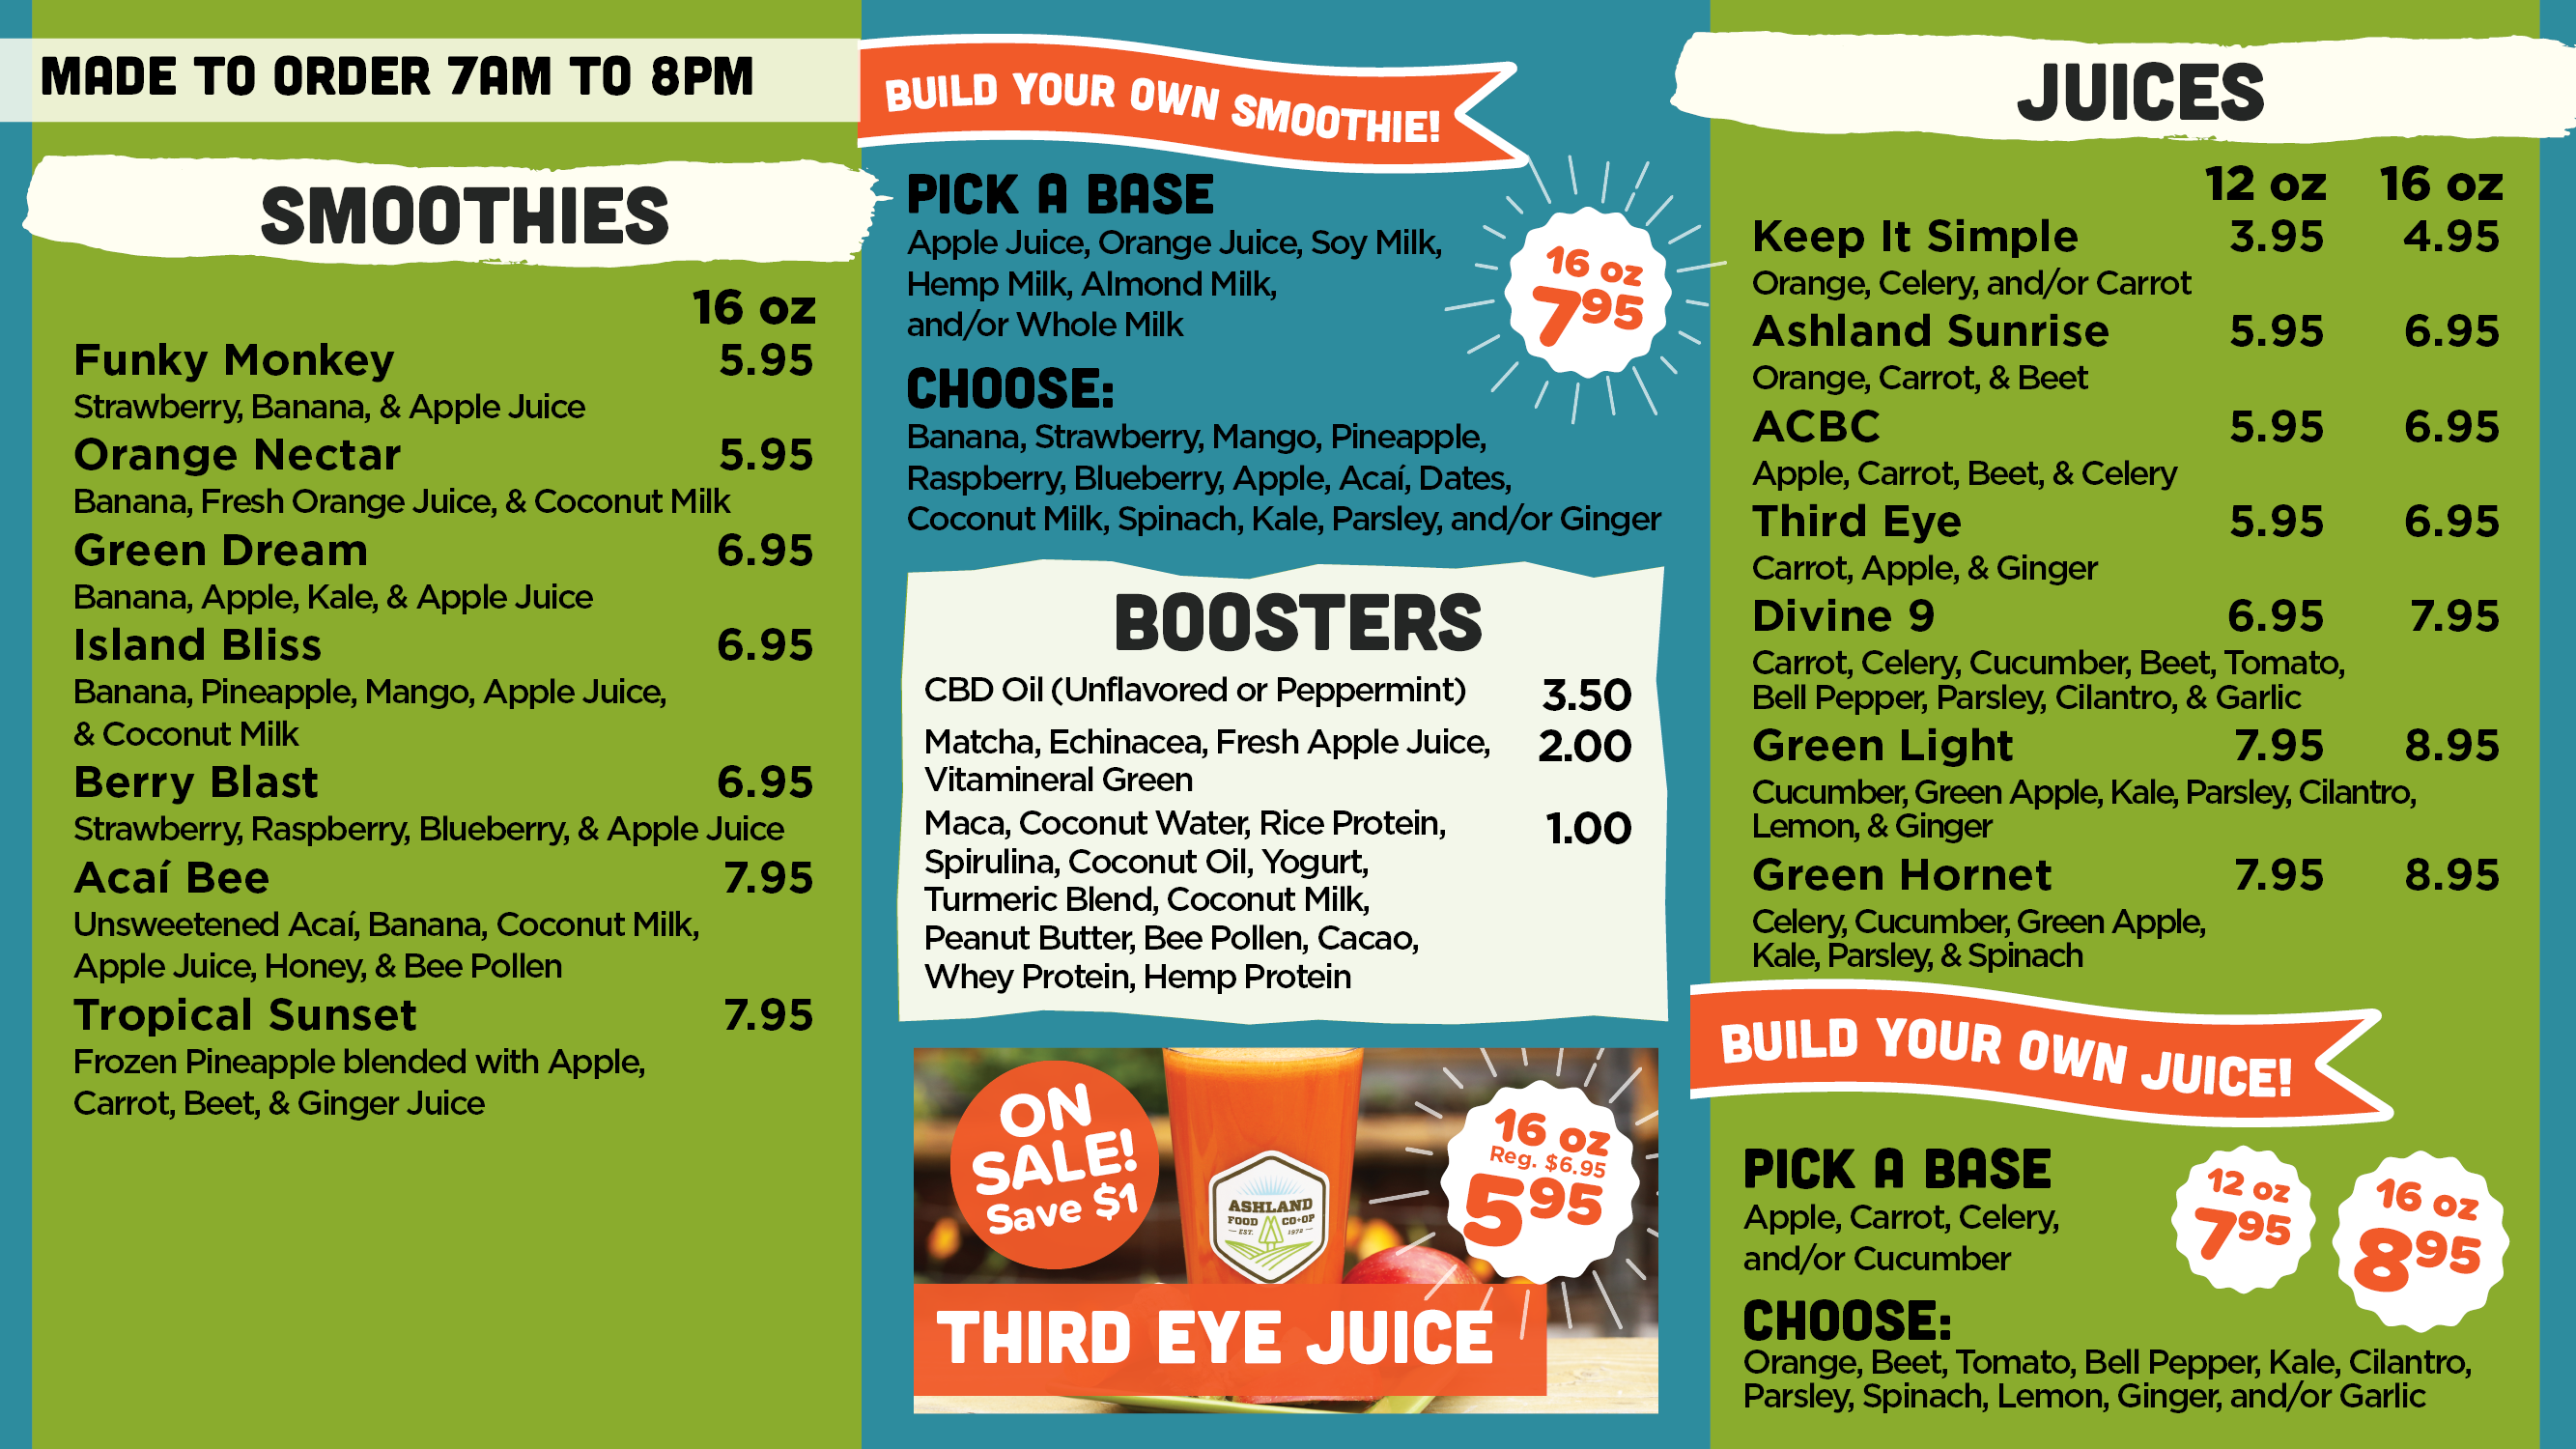 Made to Order Smoothie and Juice Menu